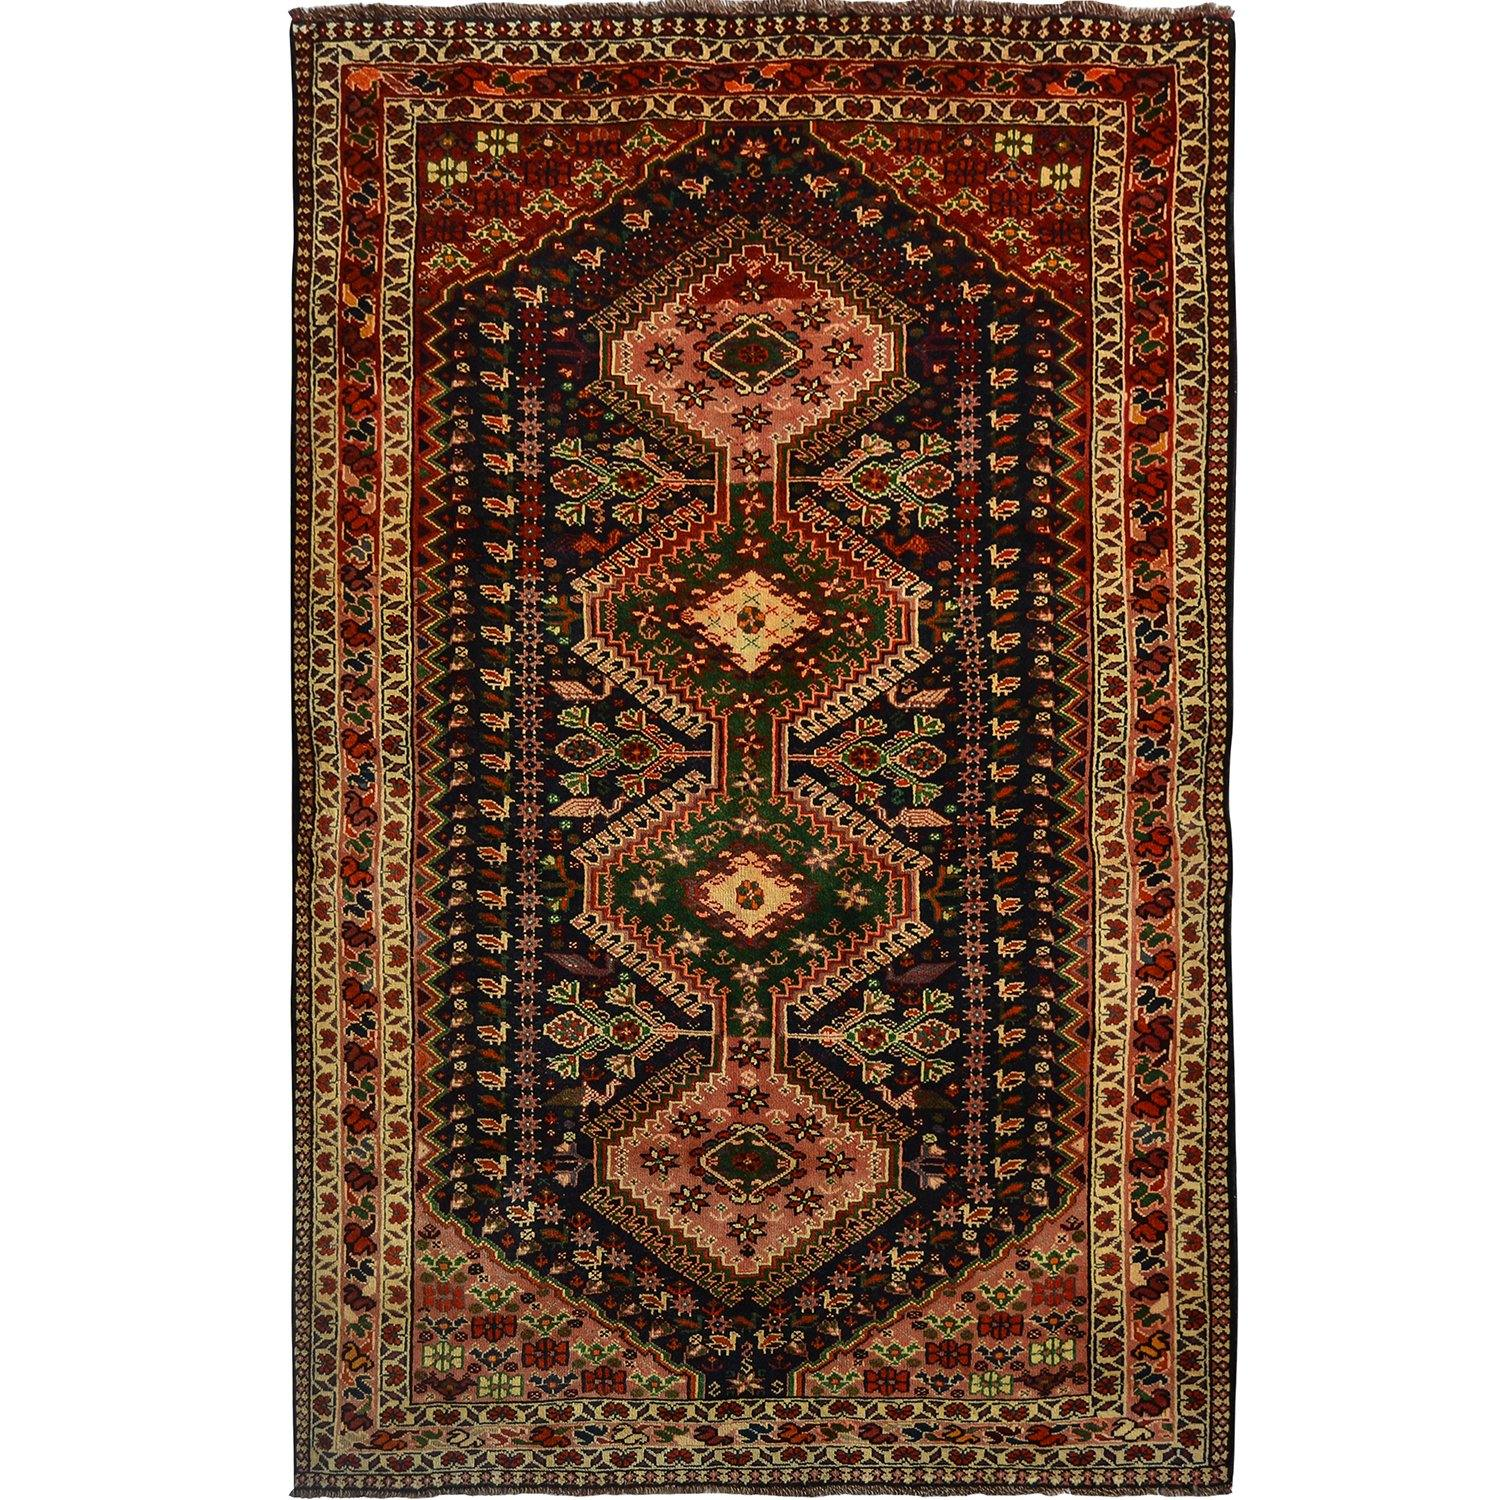 Fine Hand-knotted Persian Shiraz Wool Rug 164cm x 266cm Persian-Rug | House-of-Haghi | NewMarket | Auckland | NZ | Handmade Persian Rugs | Hand Knotted Persian Rugs